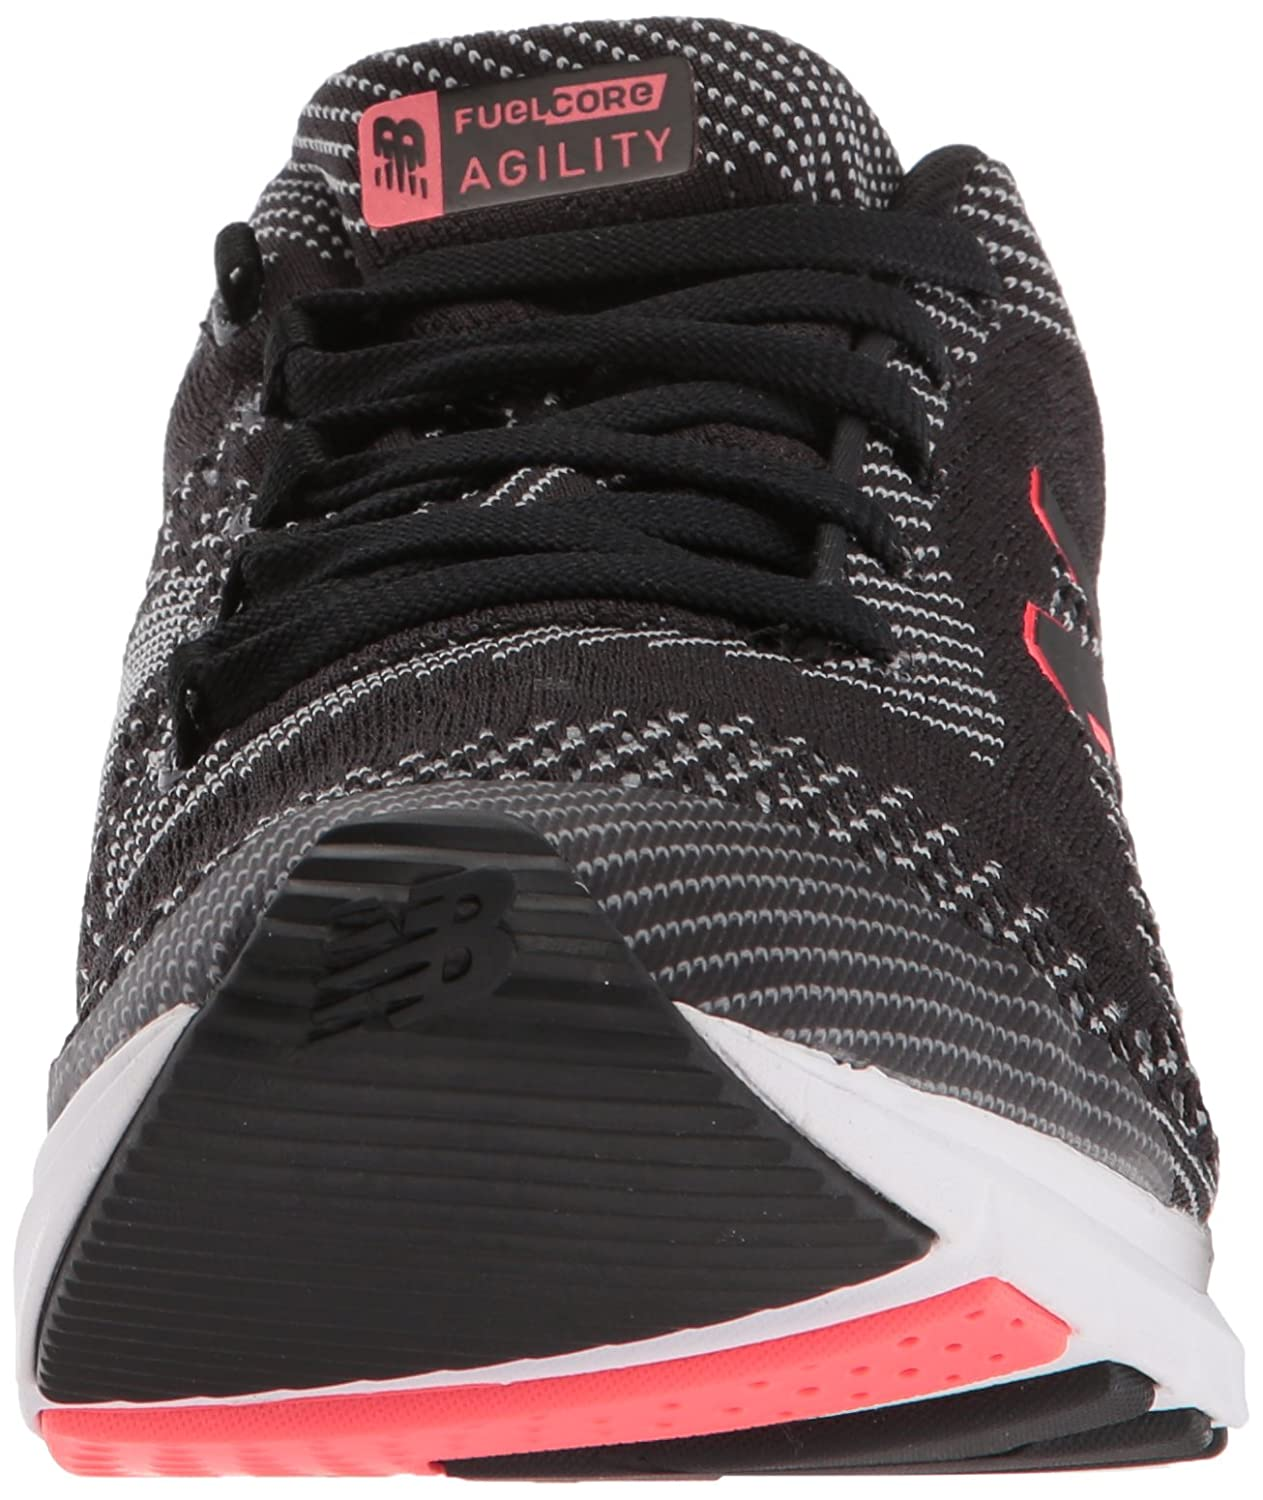 New Balance Women's FuelCore Agility v2 Cross Trainer B06XSD5TM6 5.5 D US|Black/Silver Mink